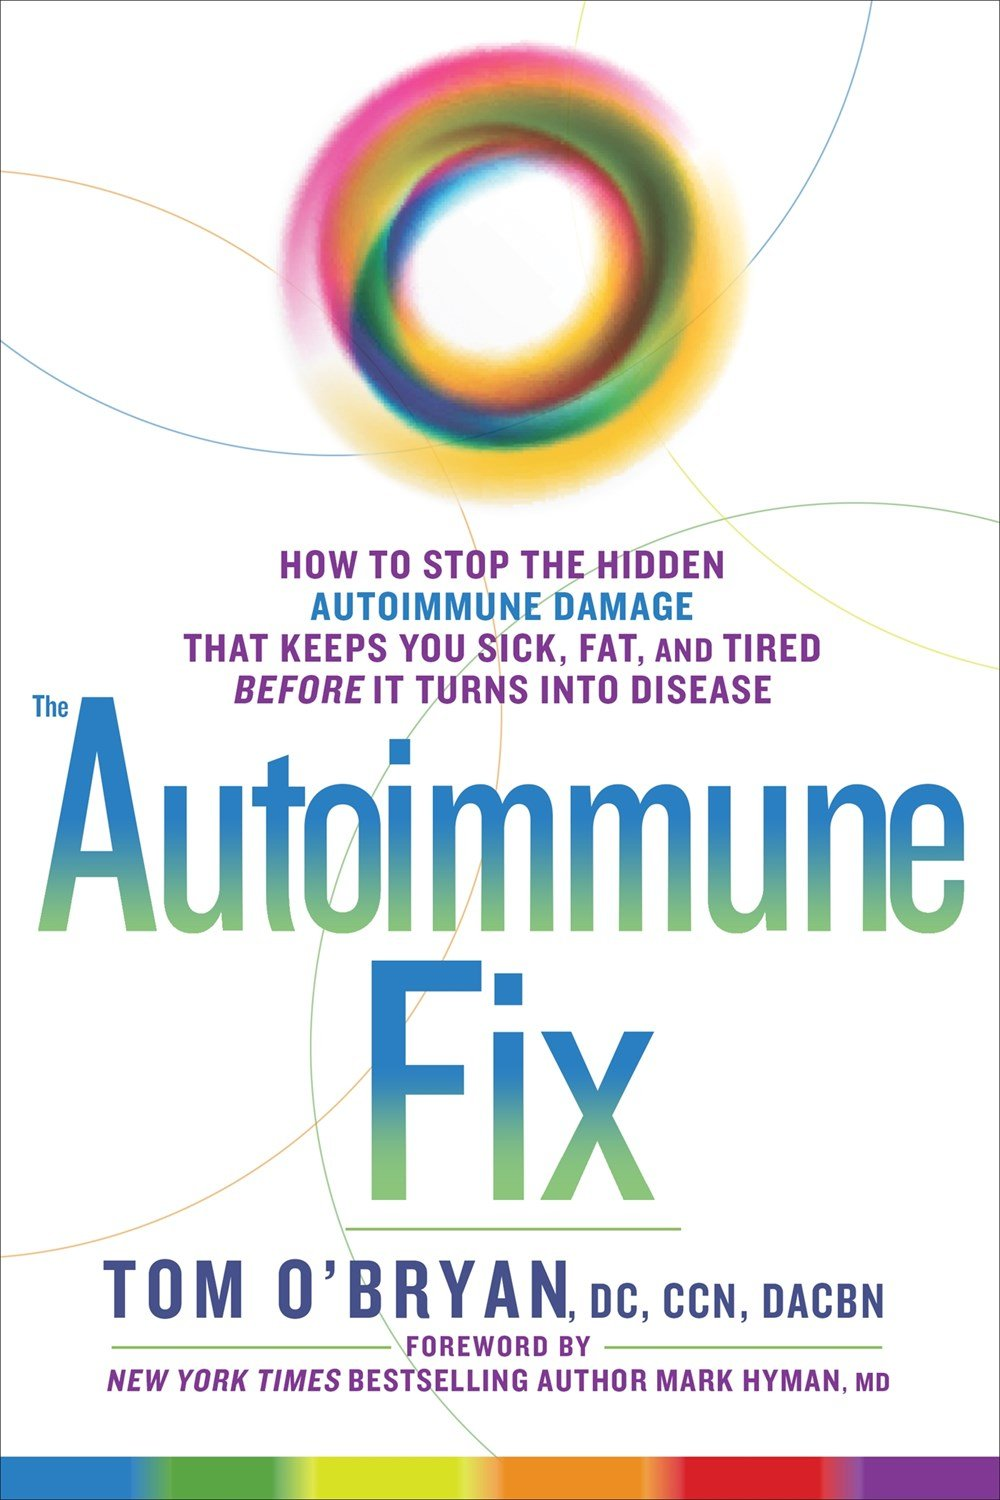 Hidden Autoimmune Damage That Keeps You Sick, Fat, And Tired Before It  Turns Into Disease: Dc Ccn Dacbn Tom O'bryan: 9781623367008: Amazon:  Books